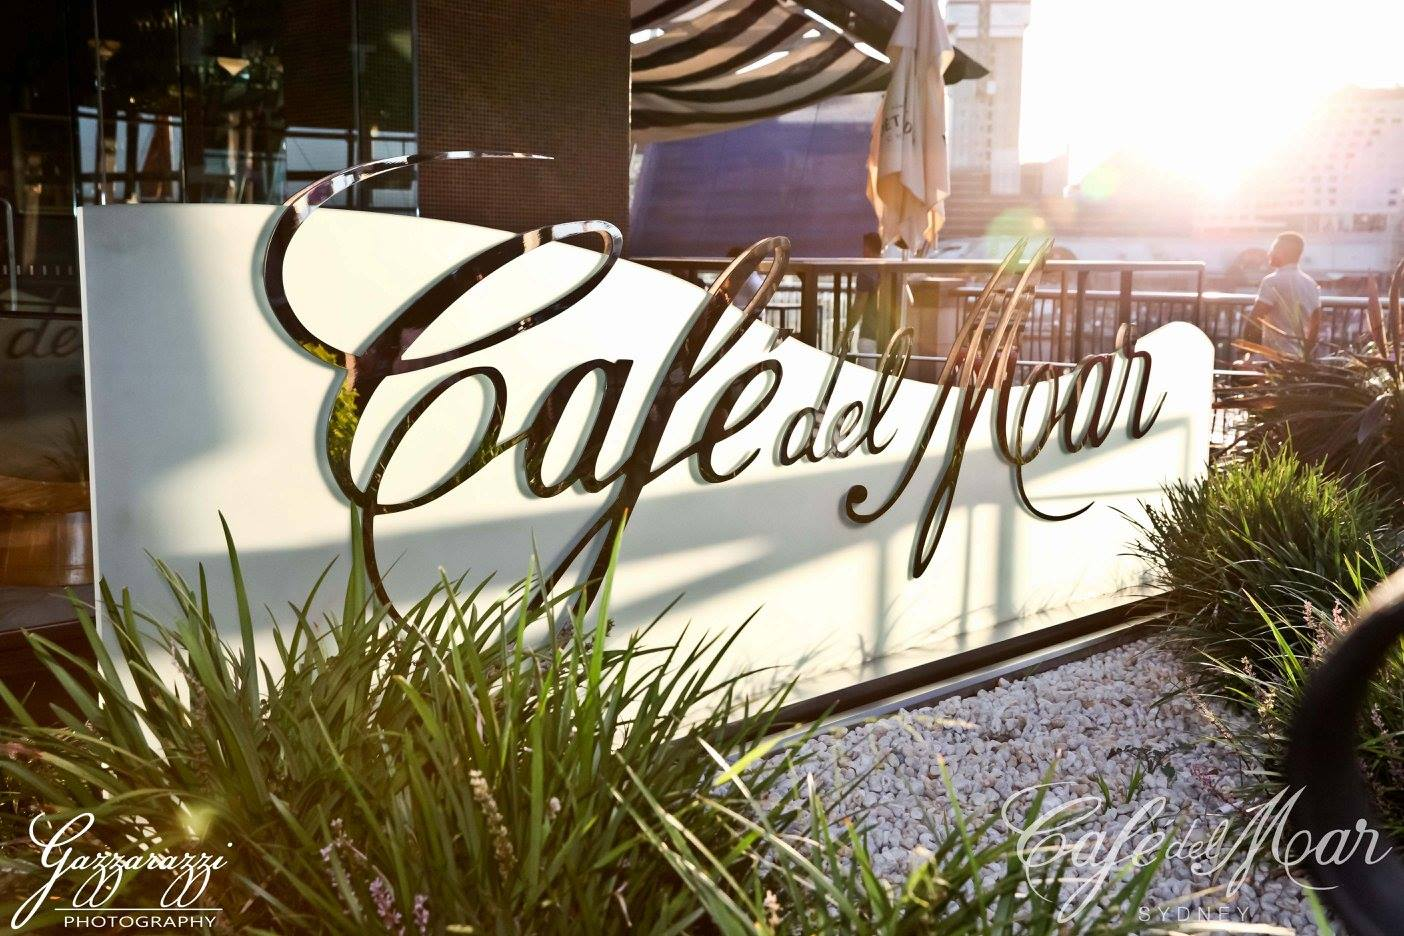 Find tickets from Cafe Del Mar Sydney